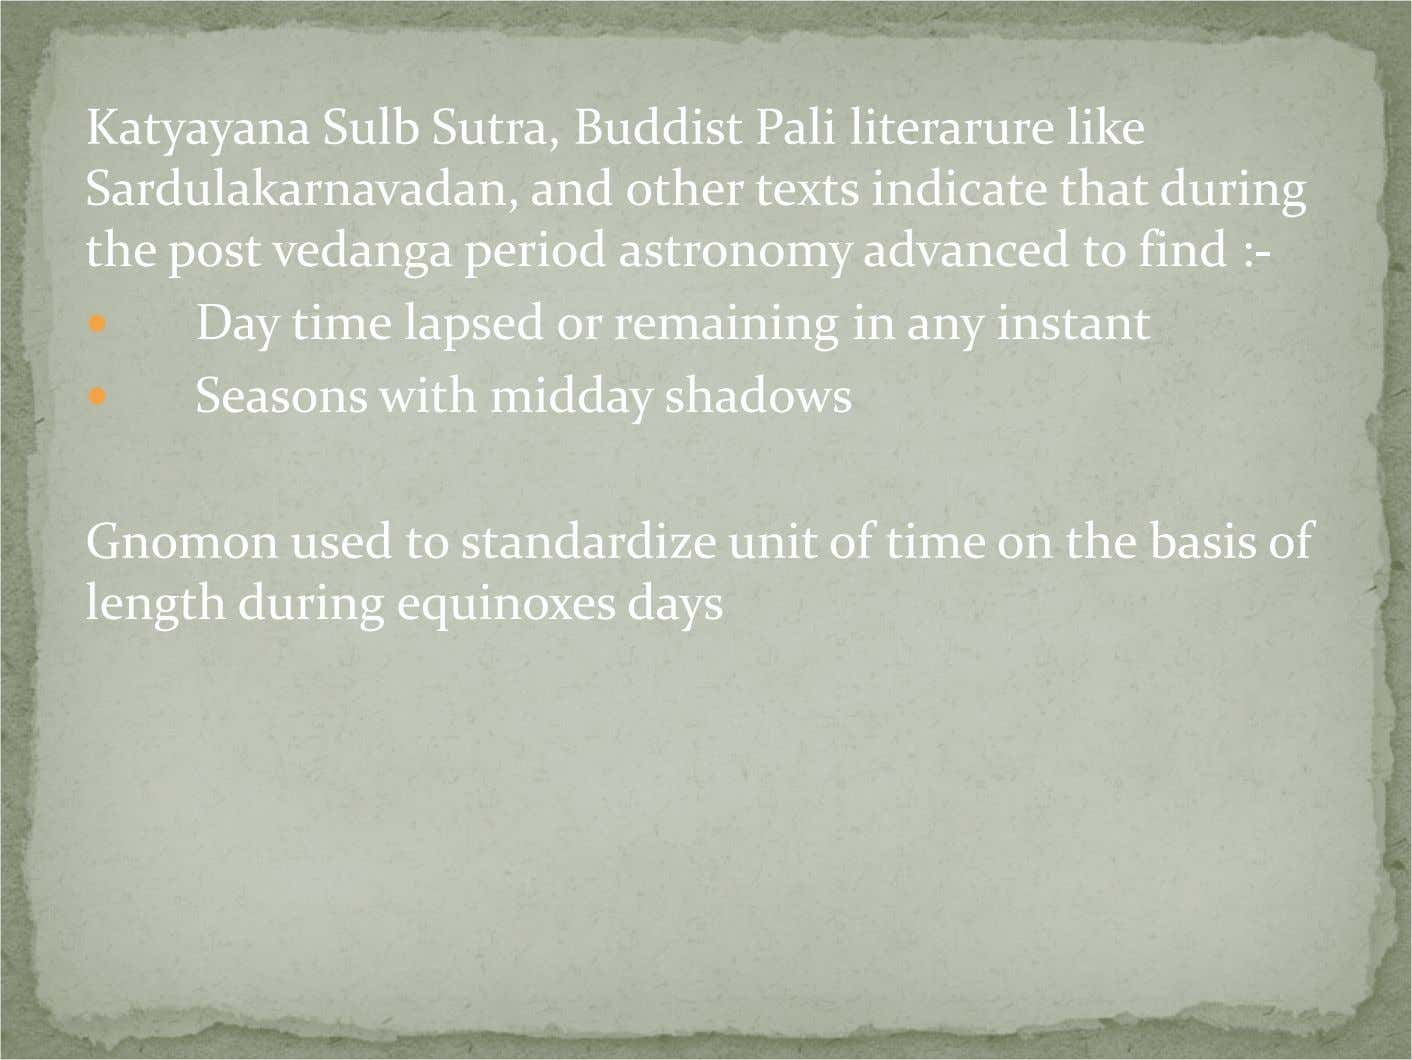 Katyayana Sulb Sutra, Buddist Pali literarure like Sardulakarnavadan, and other texts indicate that during the